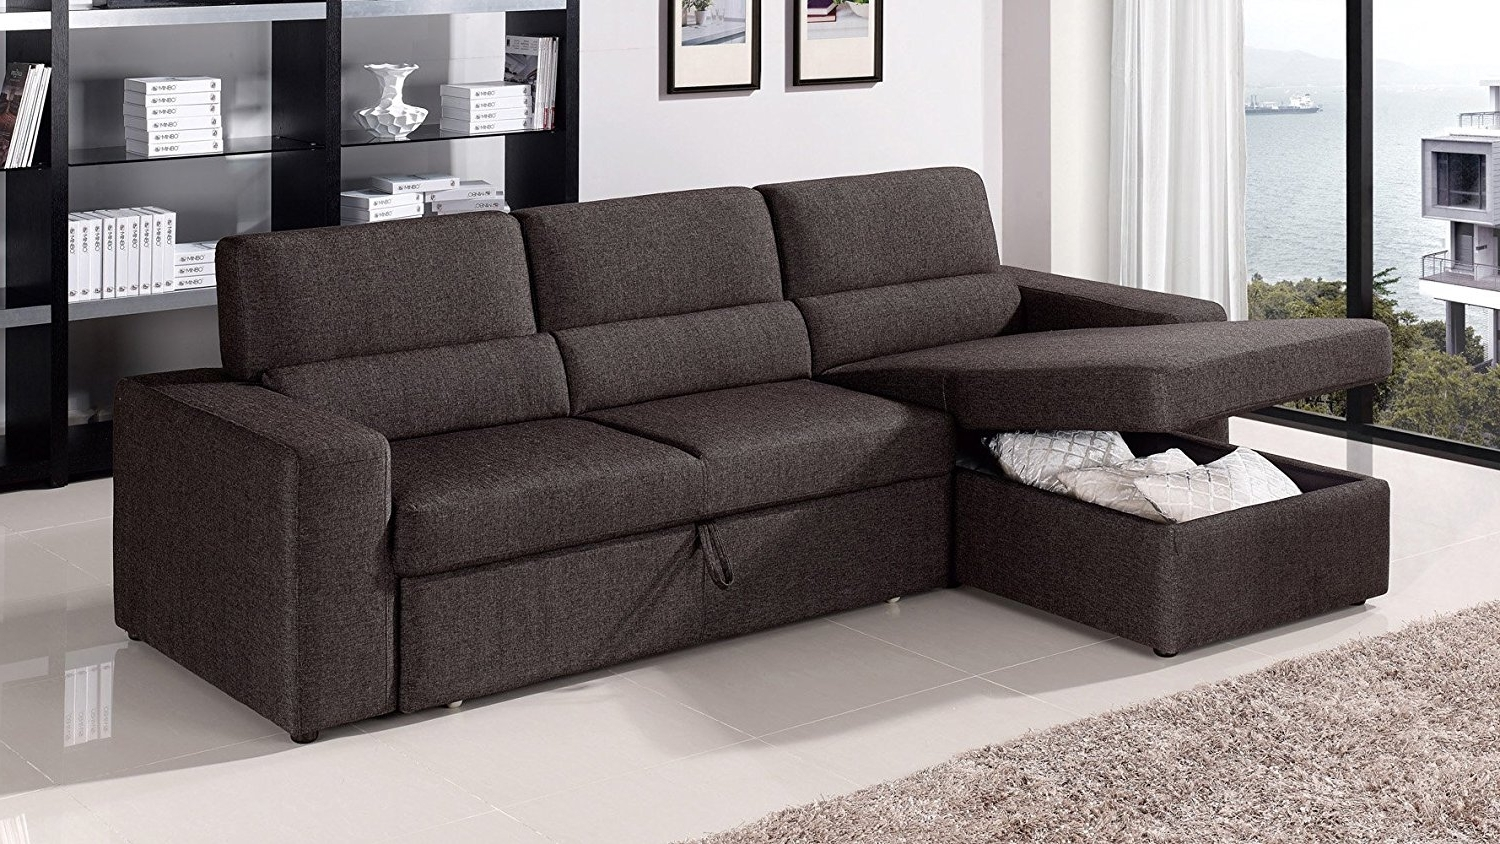 Well Known Amazon: Black/brown Clubber Sleeper Sectional Sofa – Left With Regard To Sofas With Chaise (View 15 of 15)